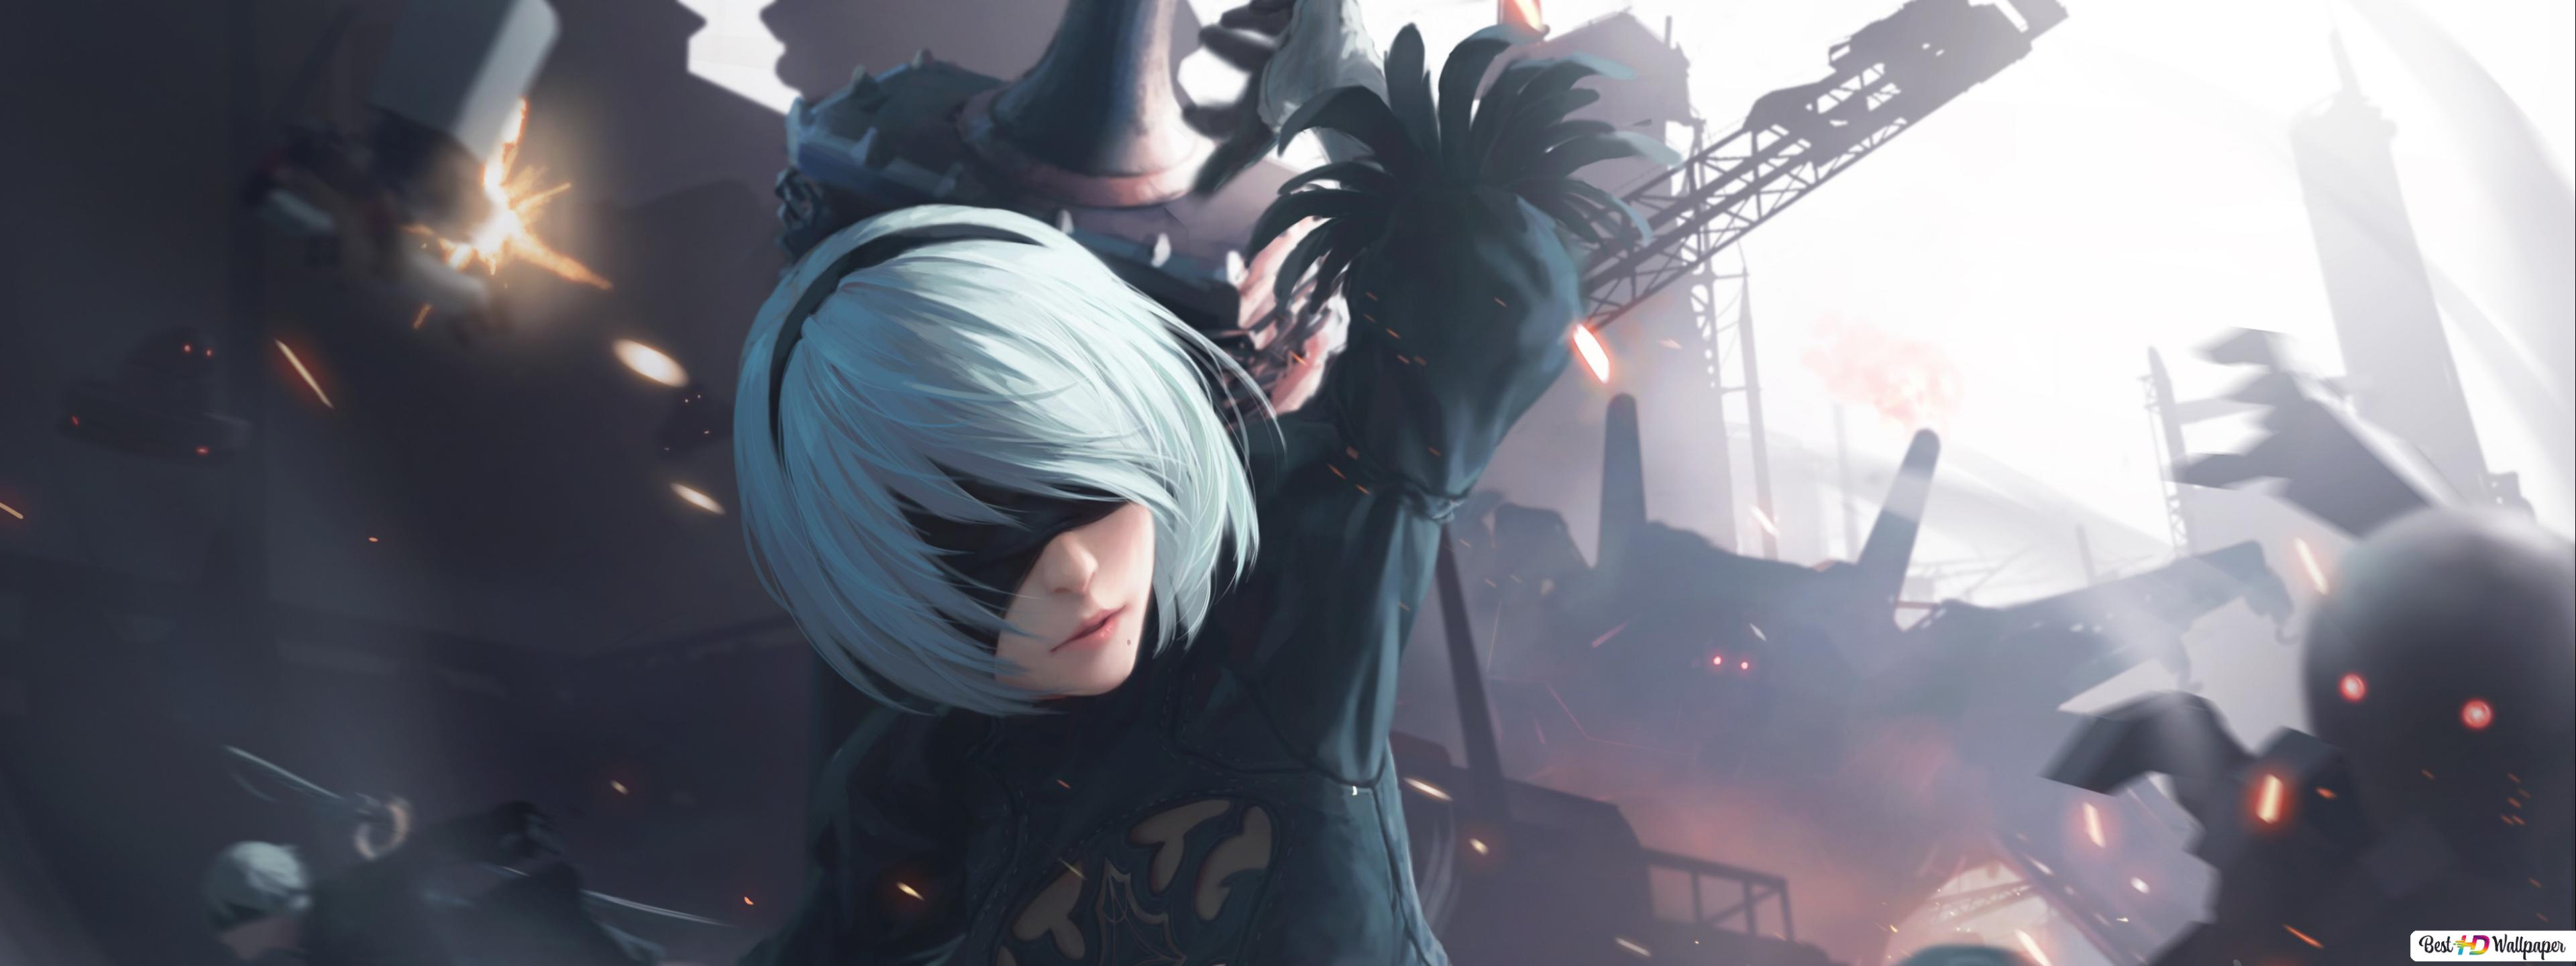 Nier Automata Video Game Yorha 2b In Battle Hd Wallpaper Download